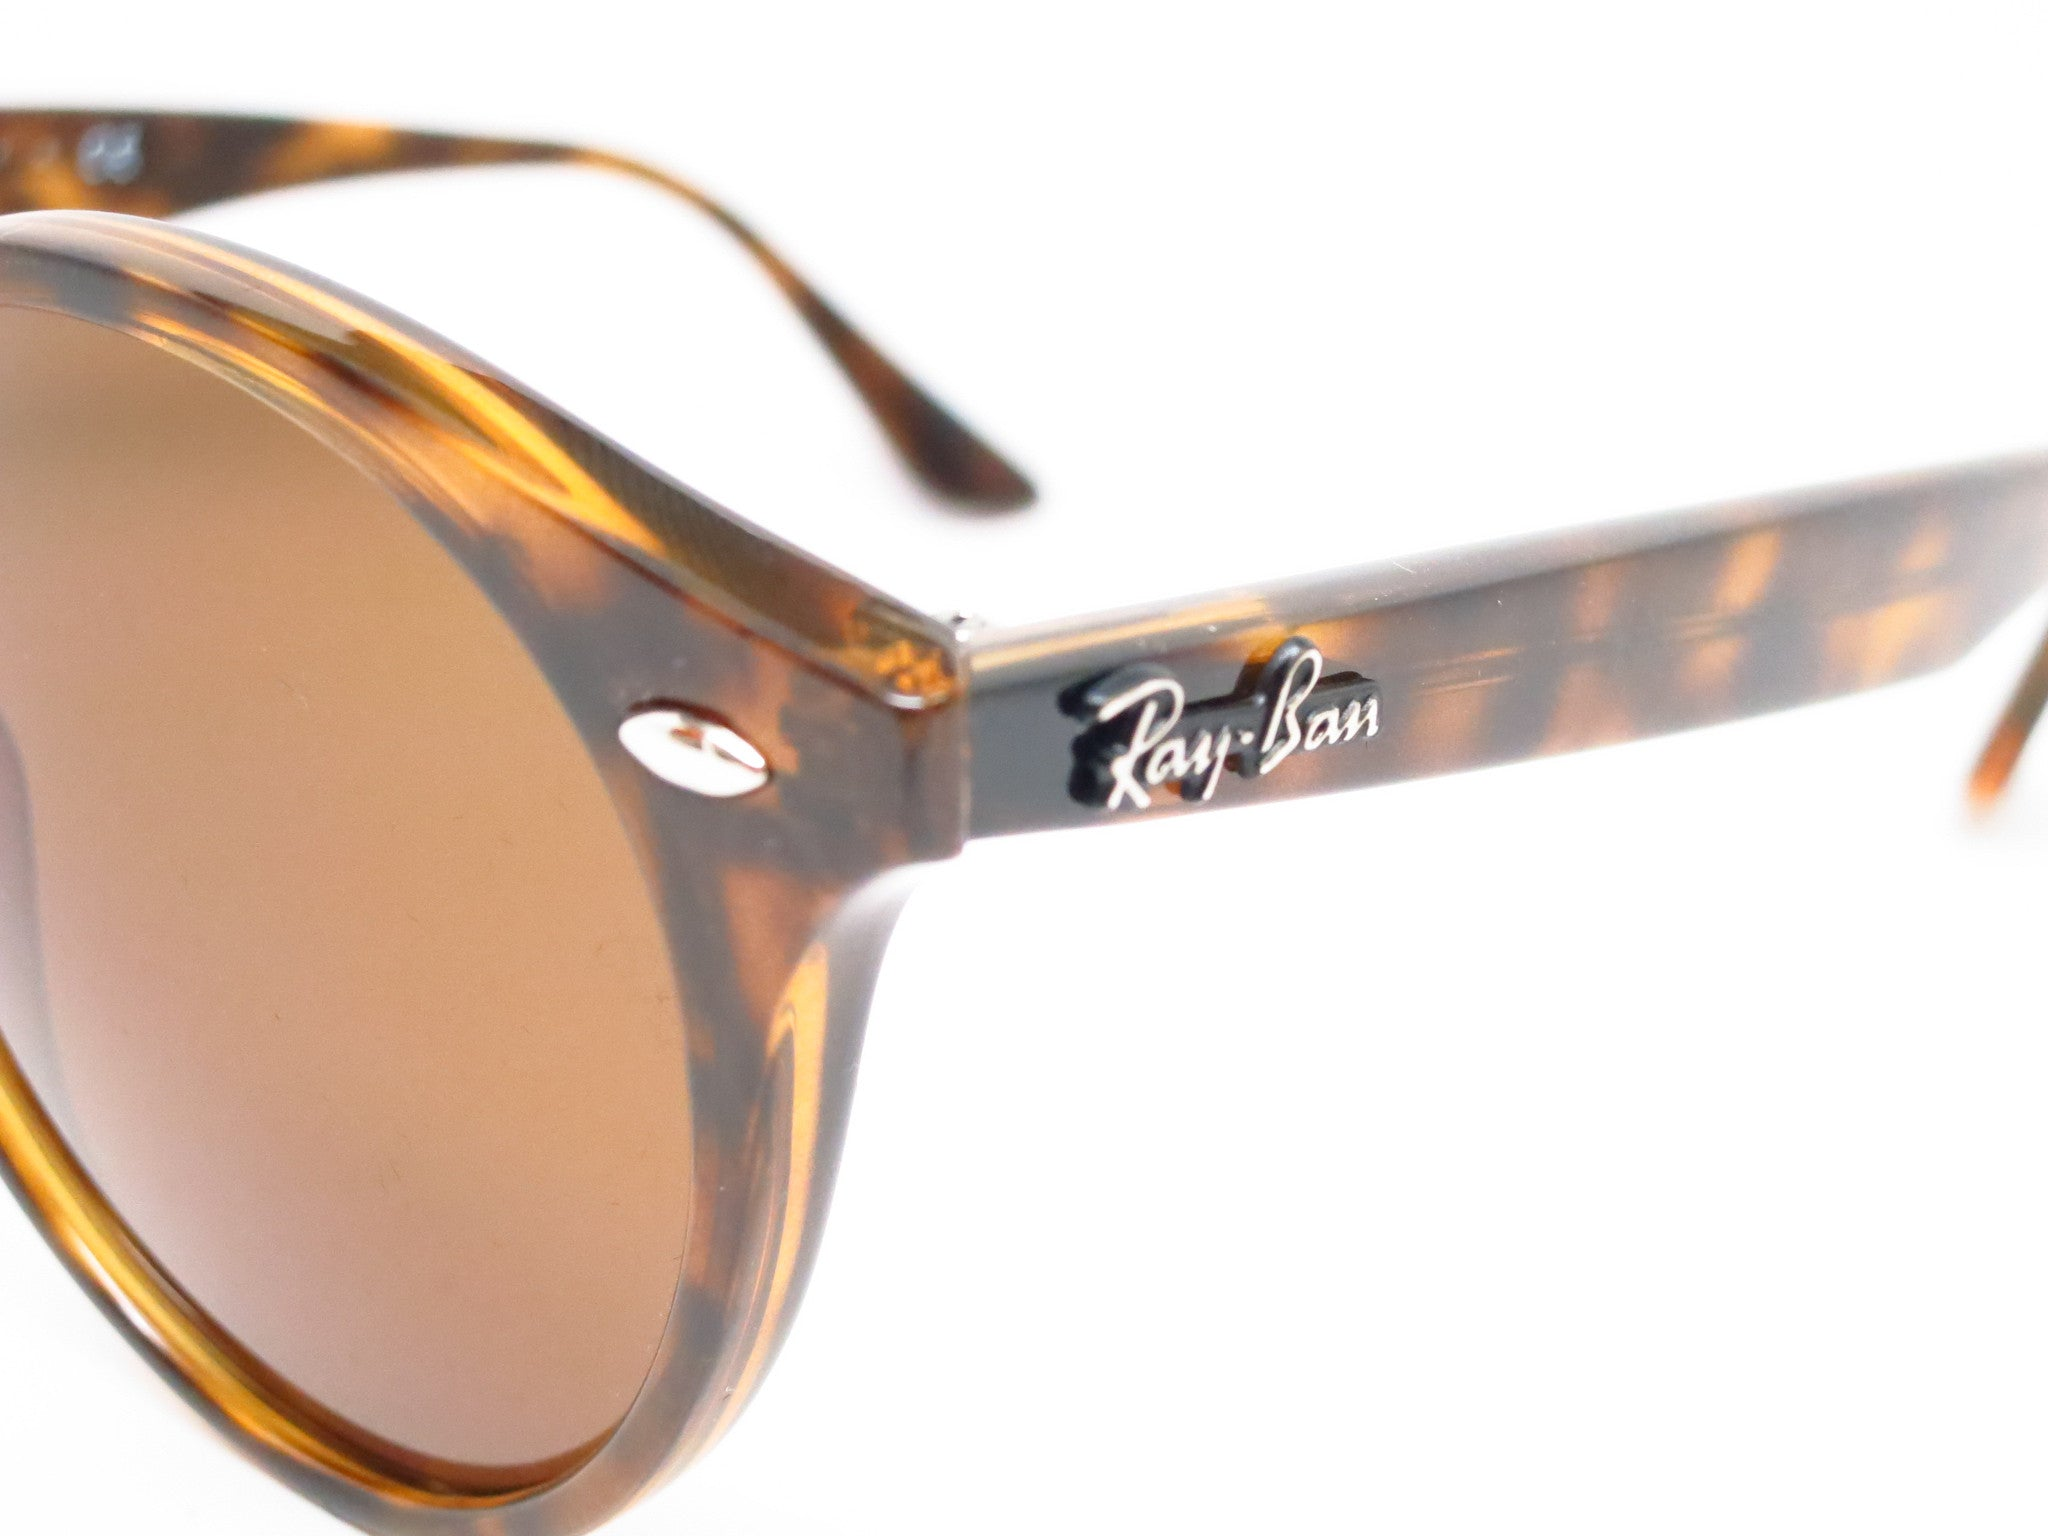 8a2f5ce3b518a3 Rayban Moins Chere « Heritage Malta